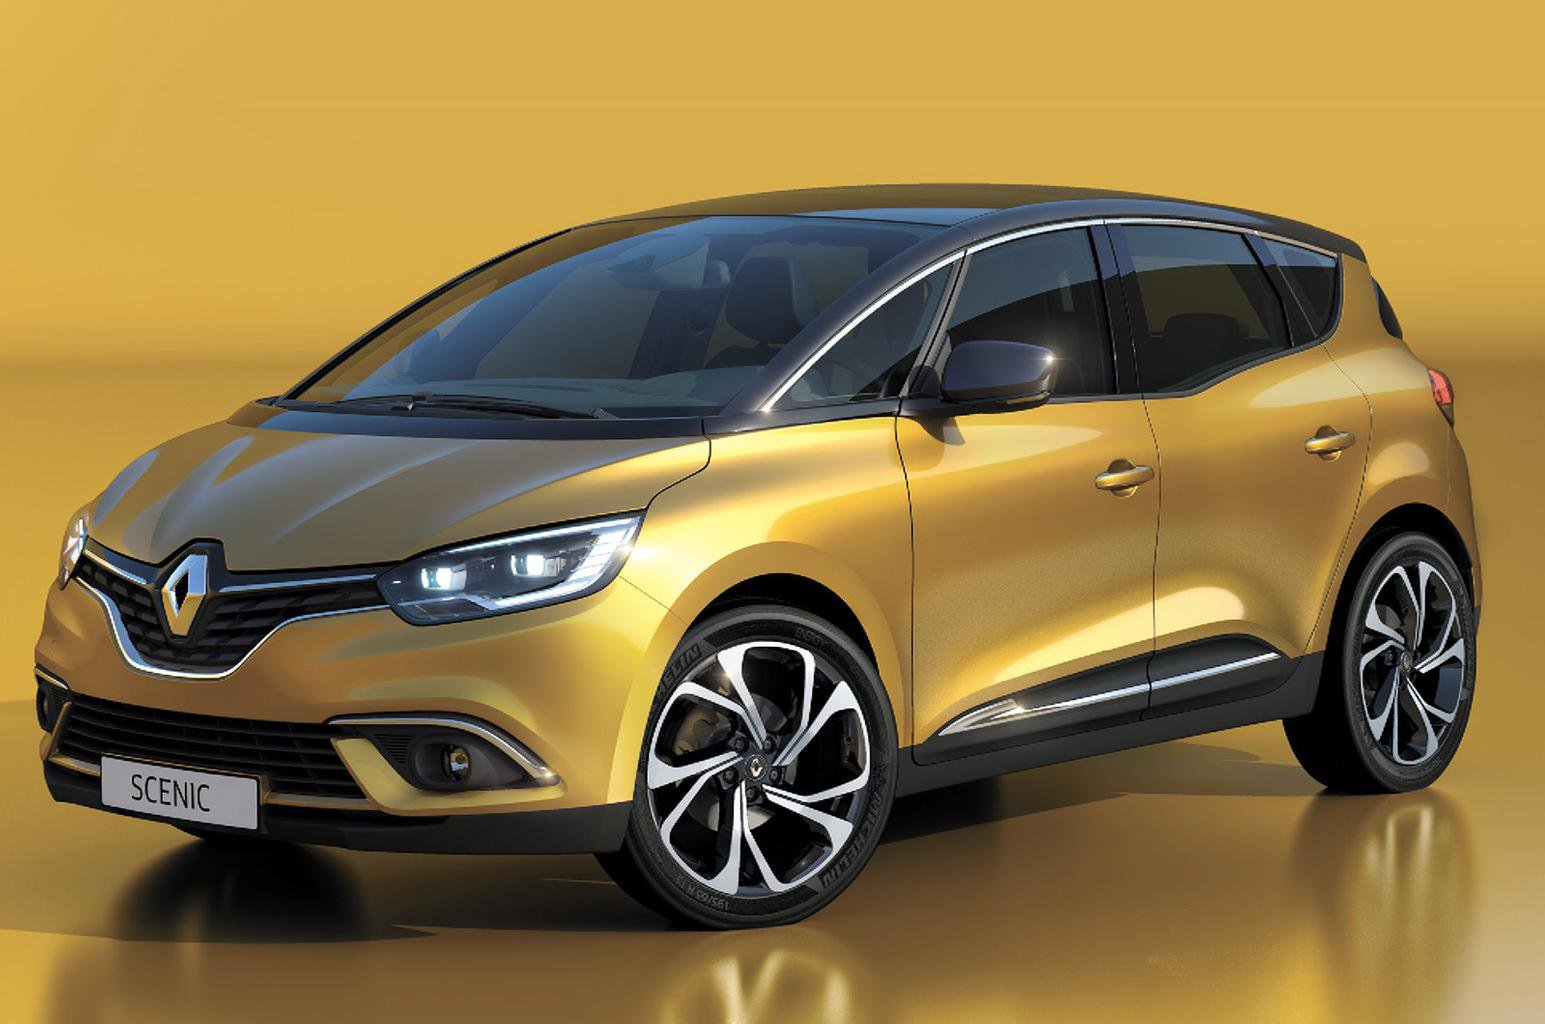 2016 Renault Scenic - exclusive reader test team preview